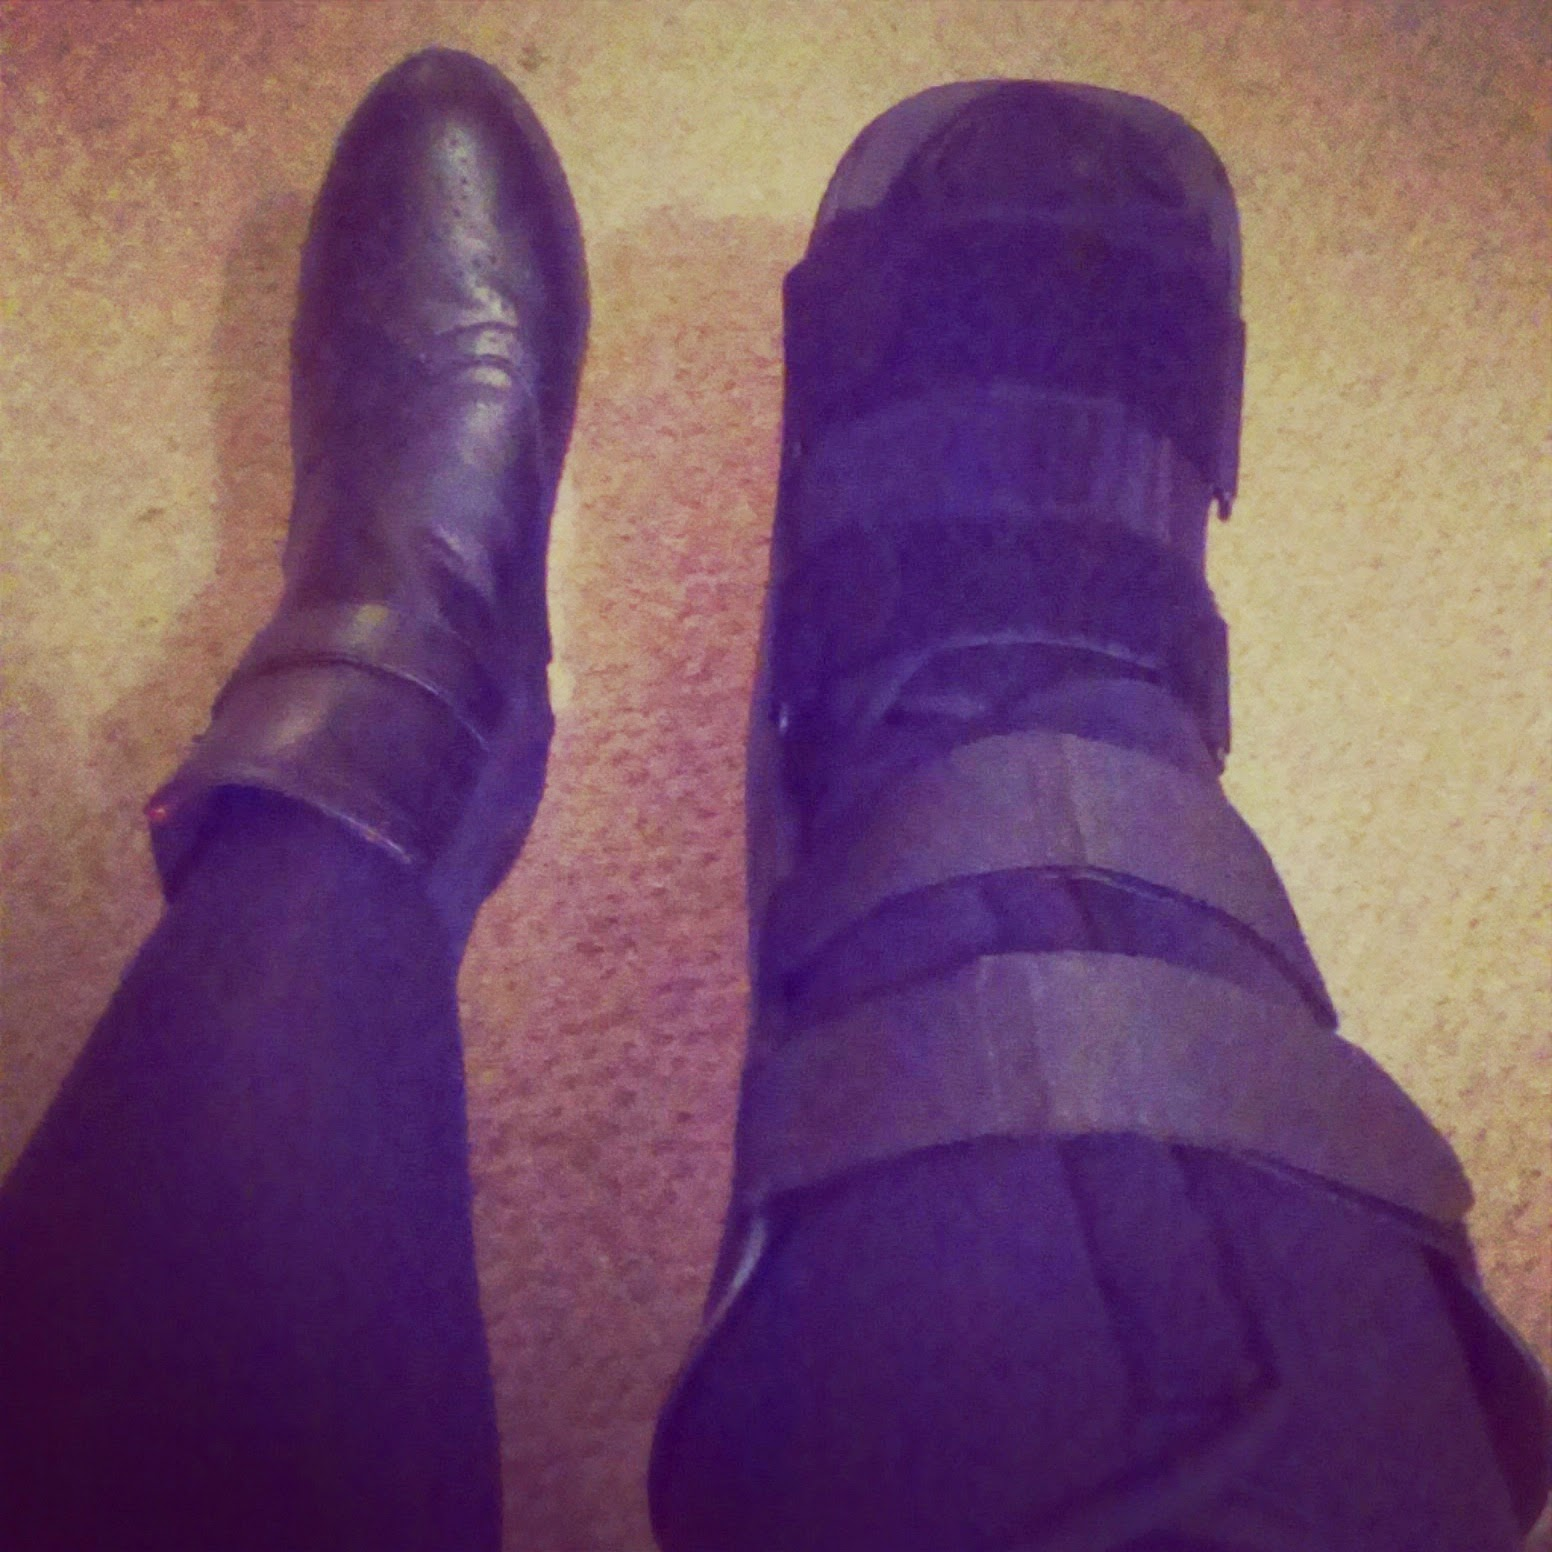 Boot brace worn after fracture